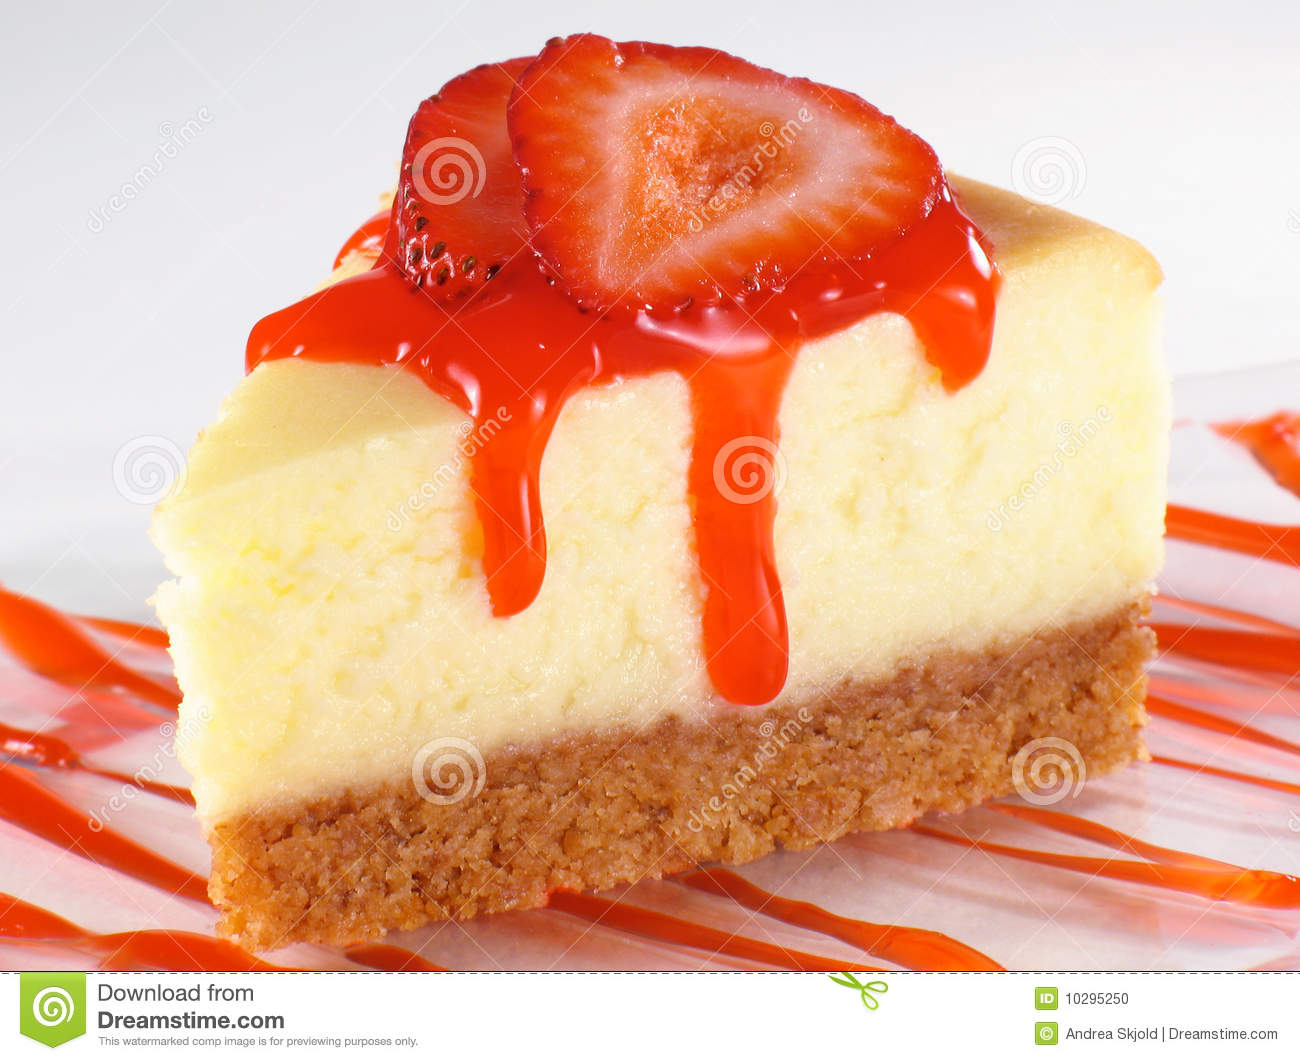 Cheesecake Images Clip Art : Strawberry Cheesecake Clipart - Clipart Suggest